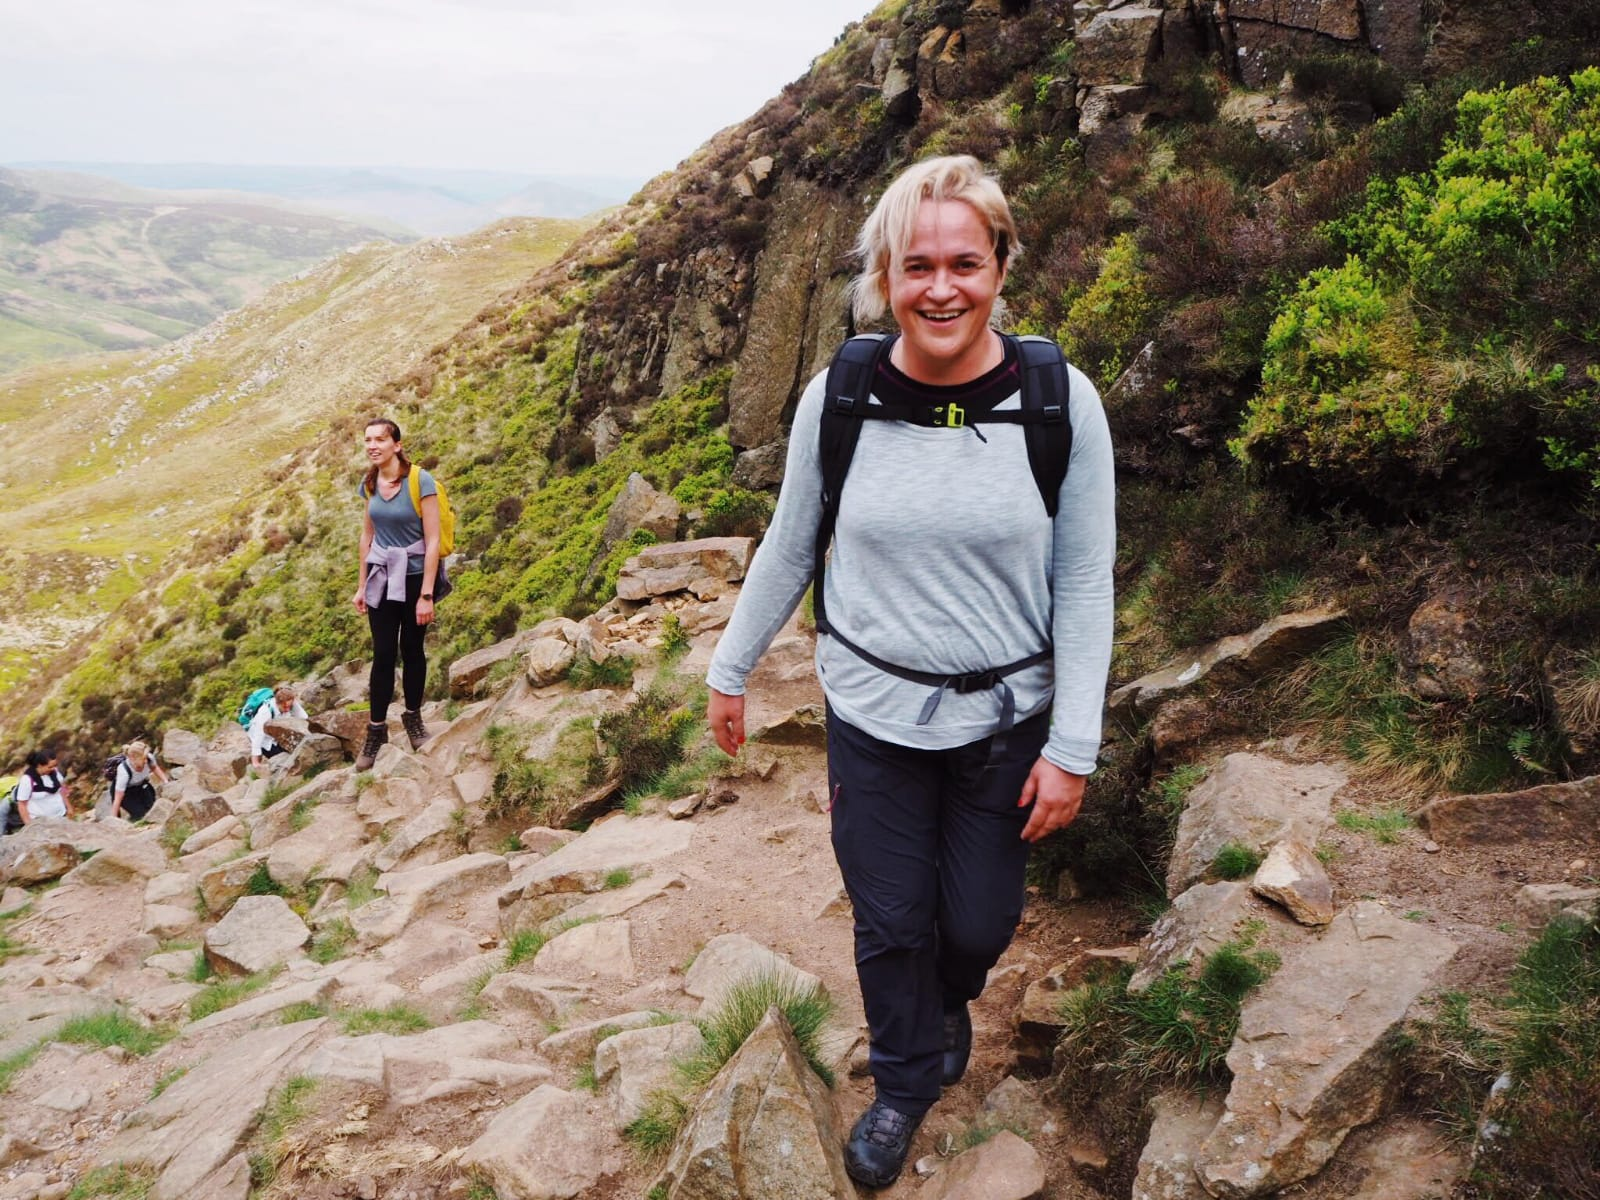 Image of Cath smiling in the hills